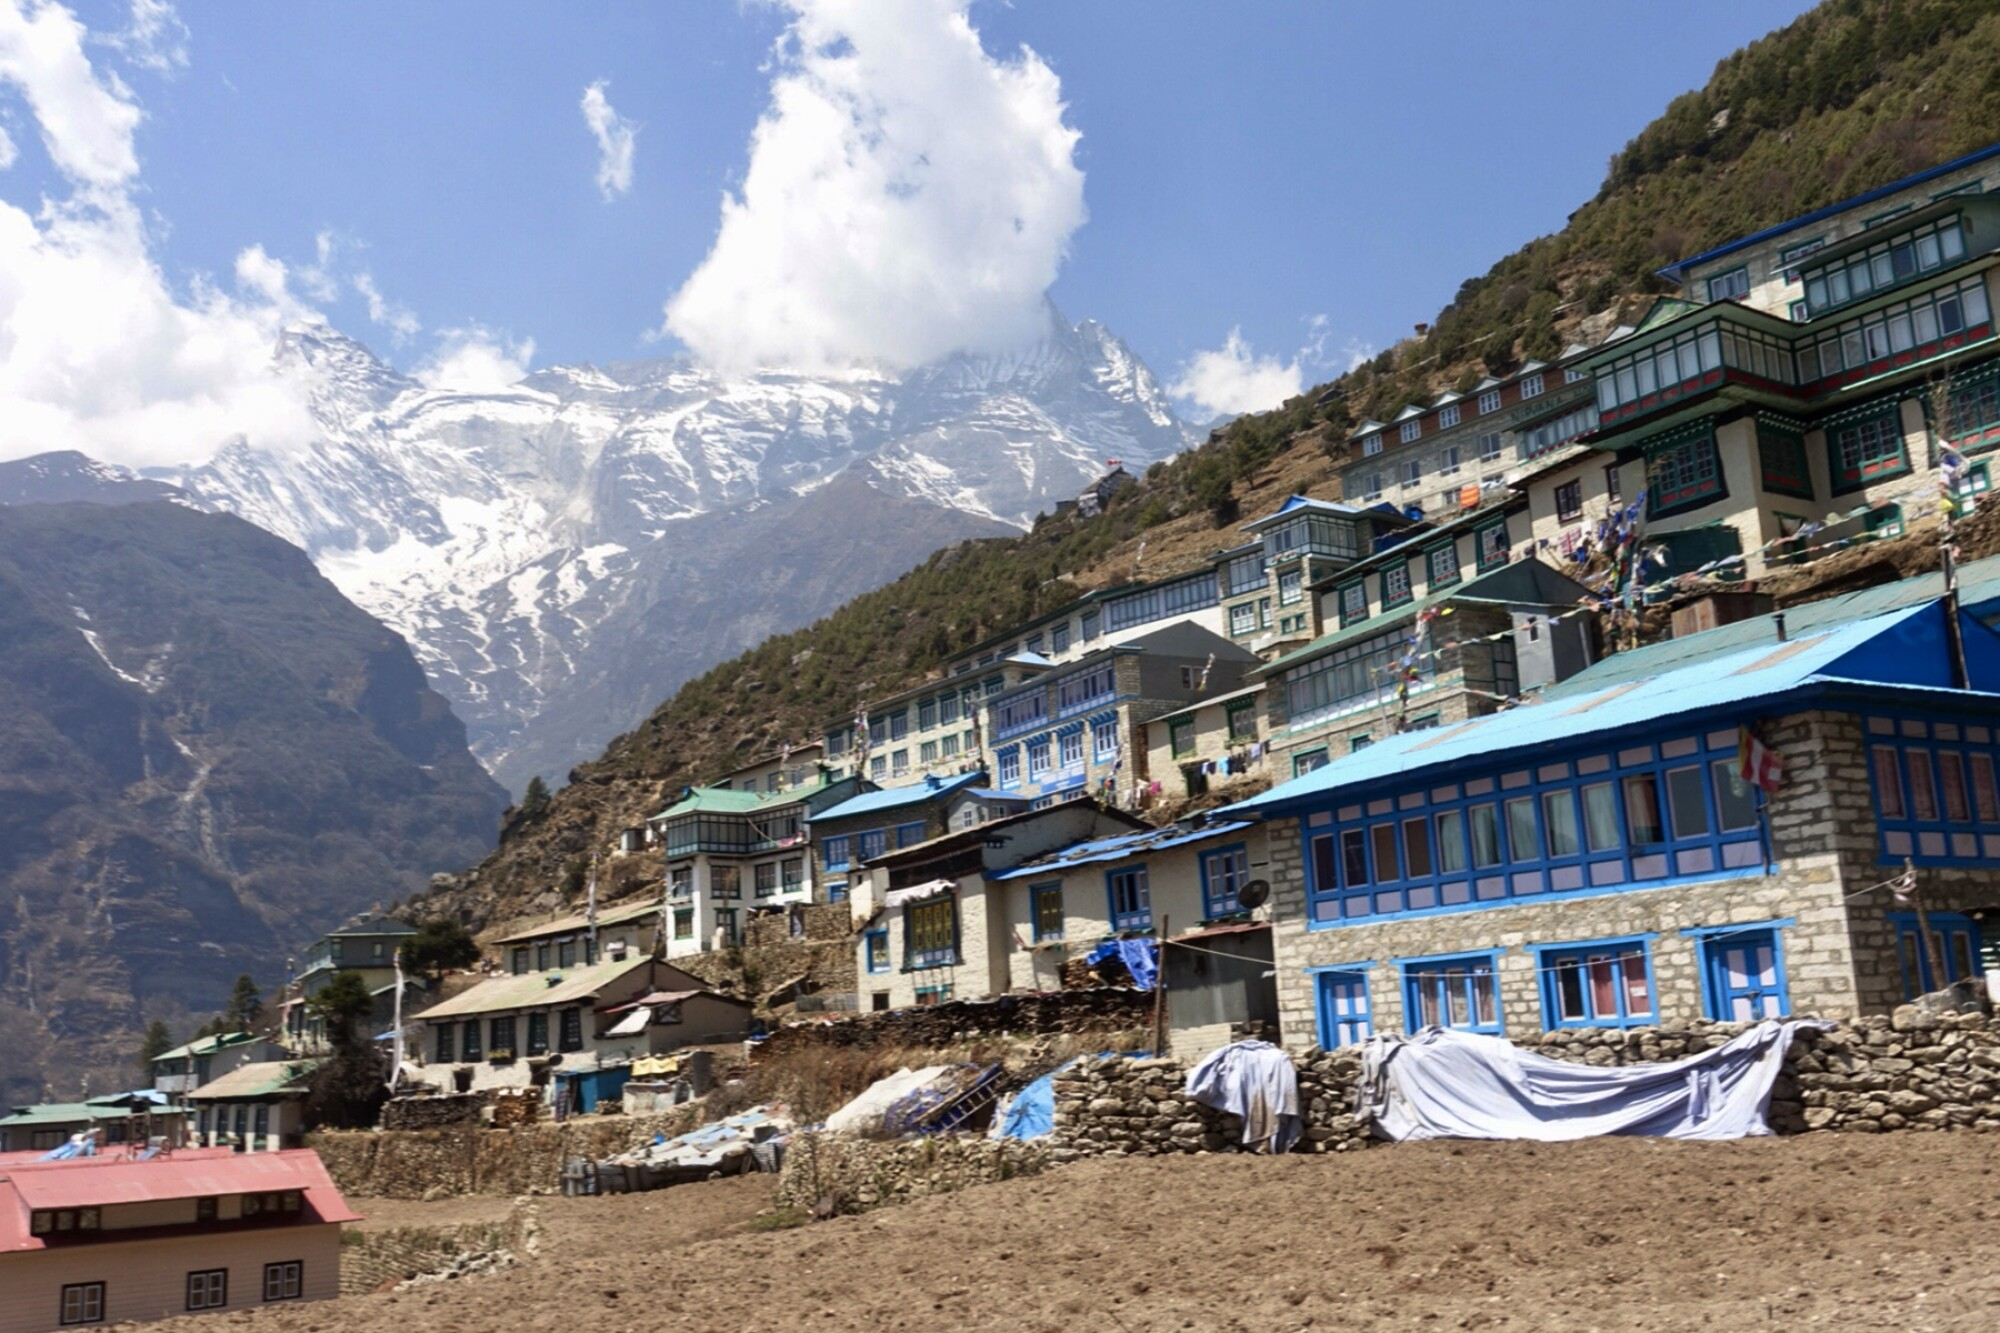 Modest buildings along a mountainside in the Himalayas